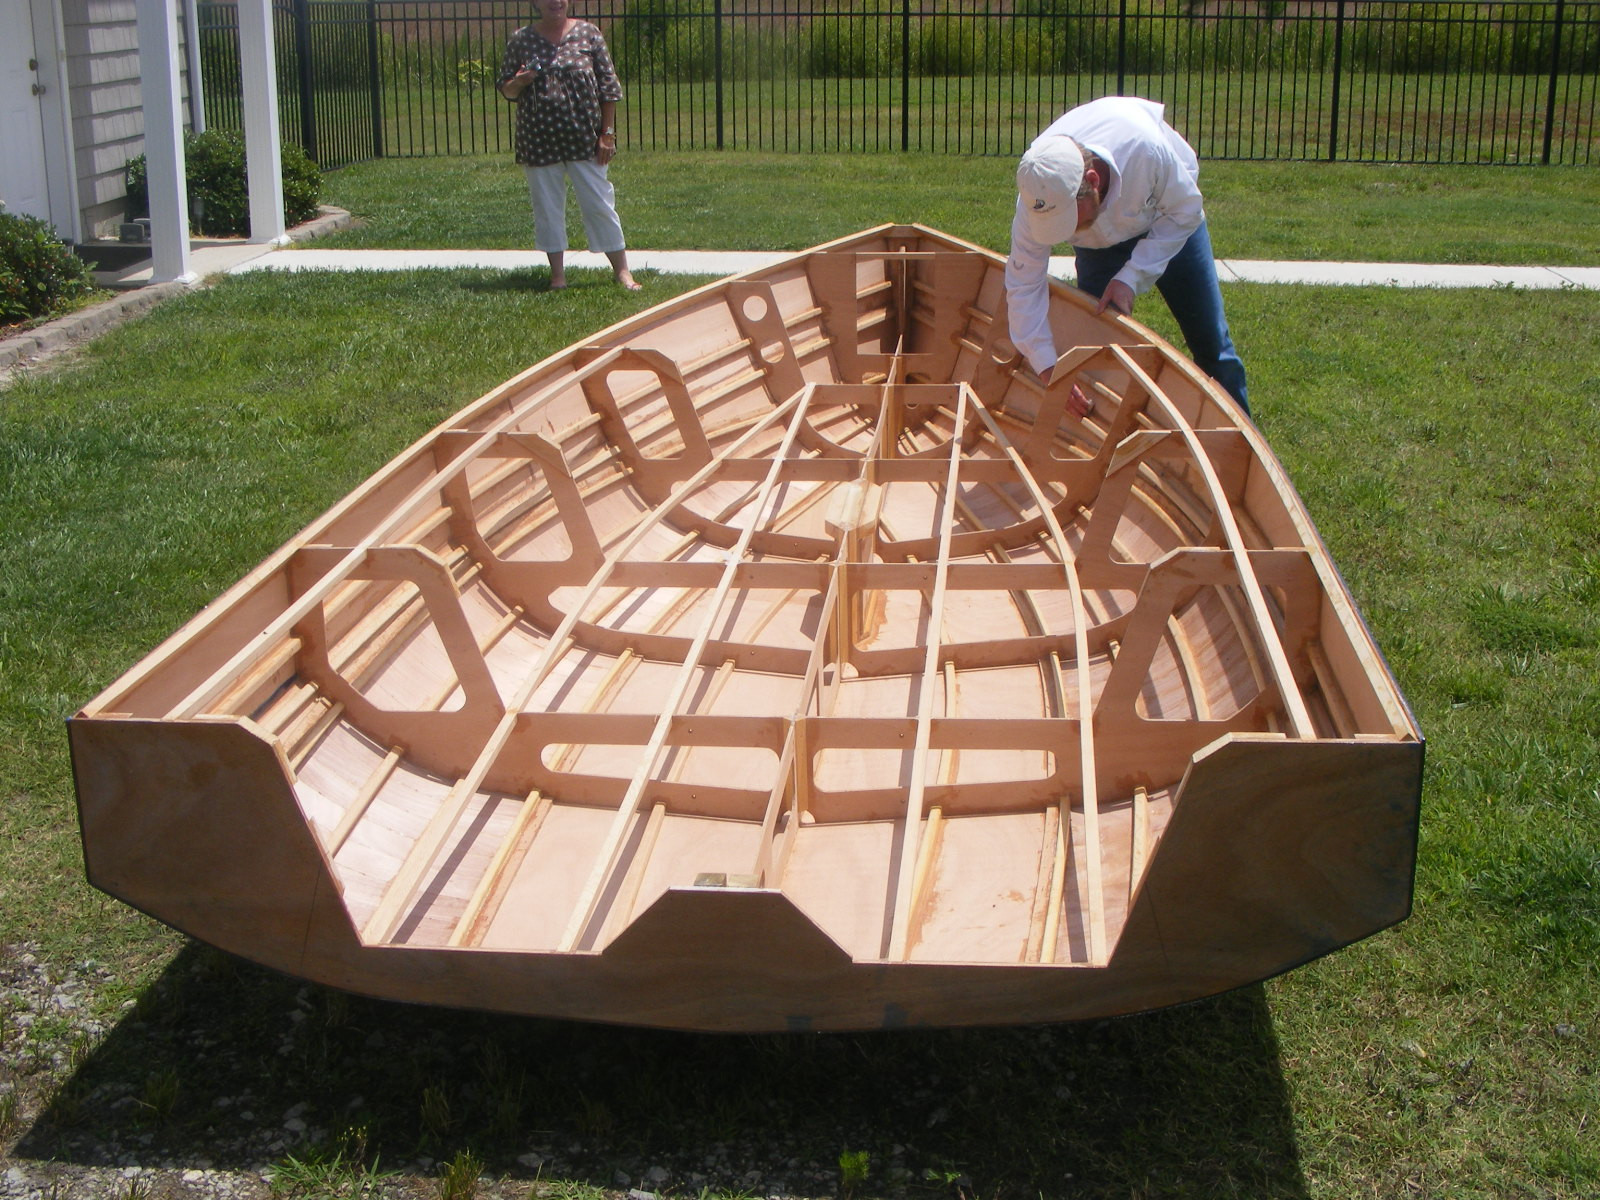 Best ideas about DIY Boat Plans . Save or Pin Woodwork Plywood Boat Designs PDF Plans Now.